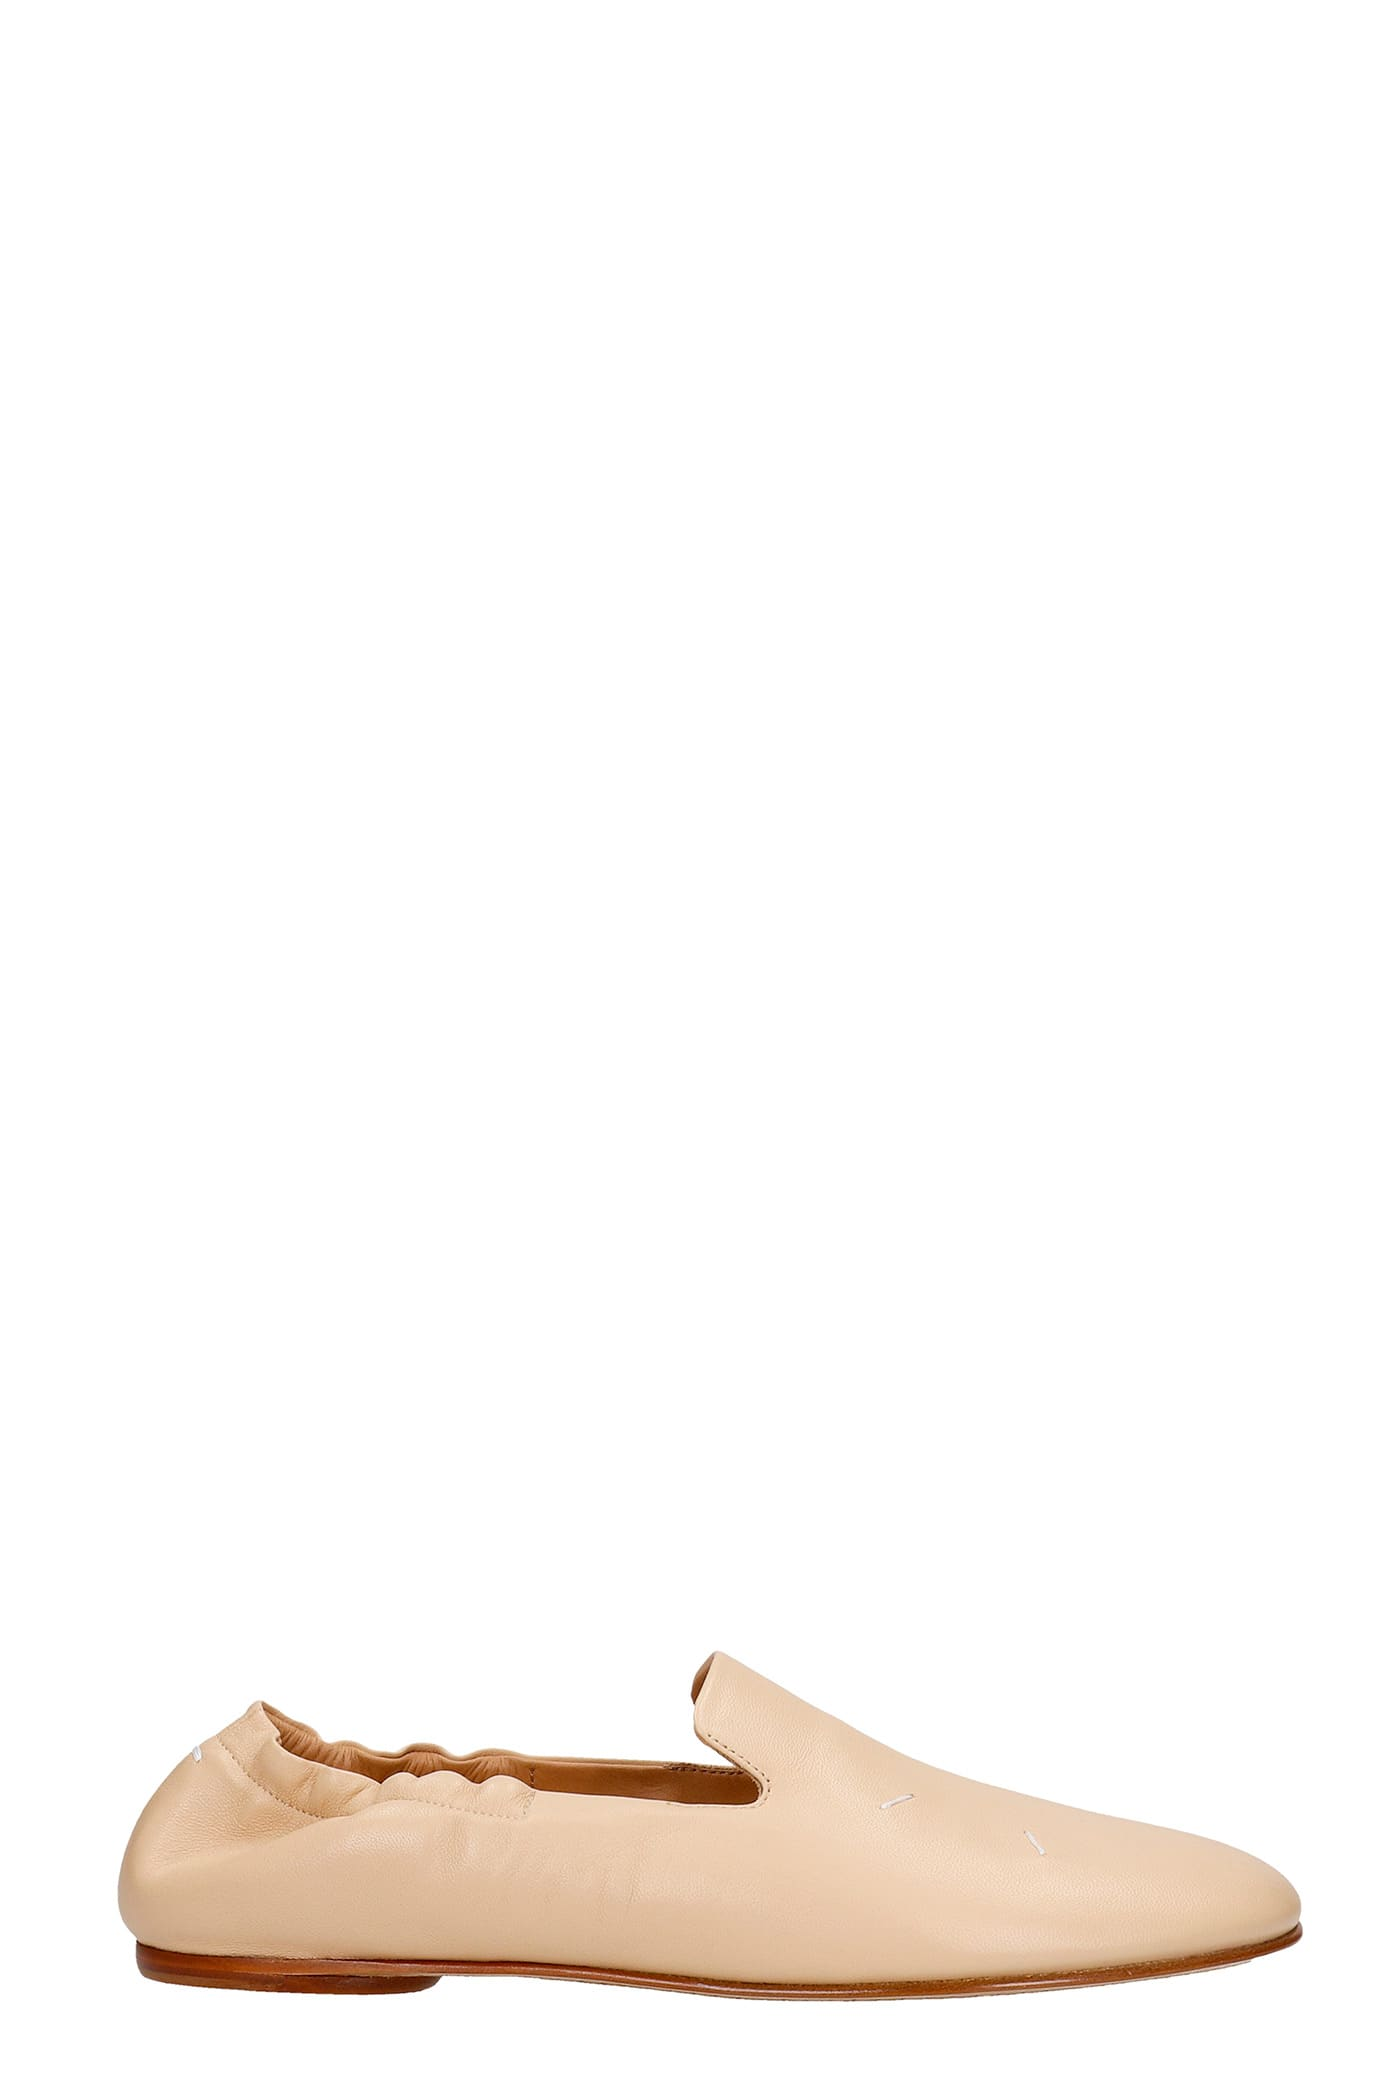 Buy Maison Margiela Loafers In Powder Leather online, shop Maison Margiela shoes with free shipping